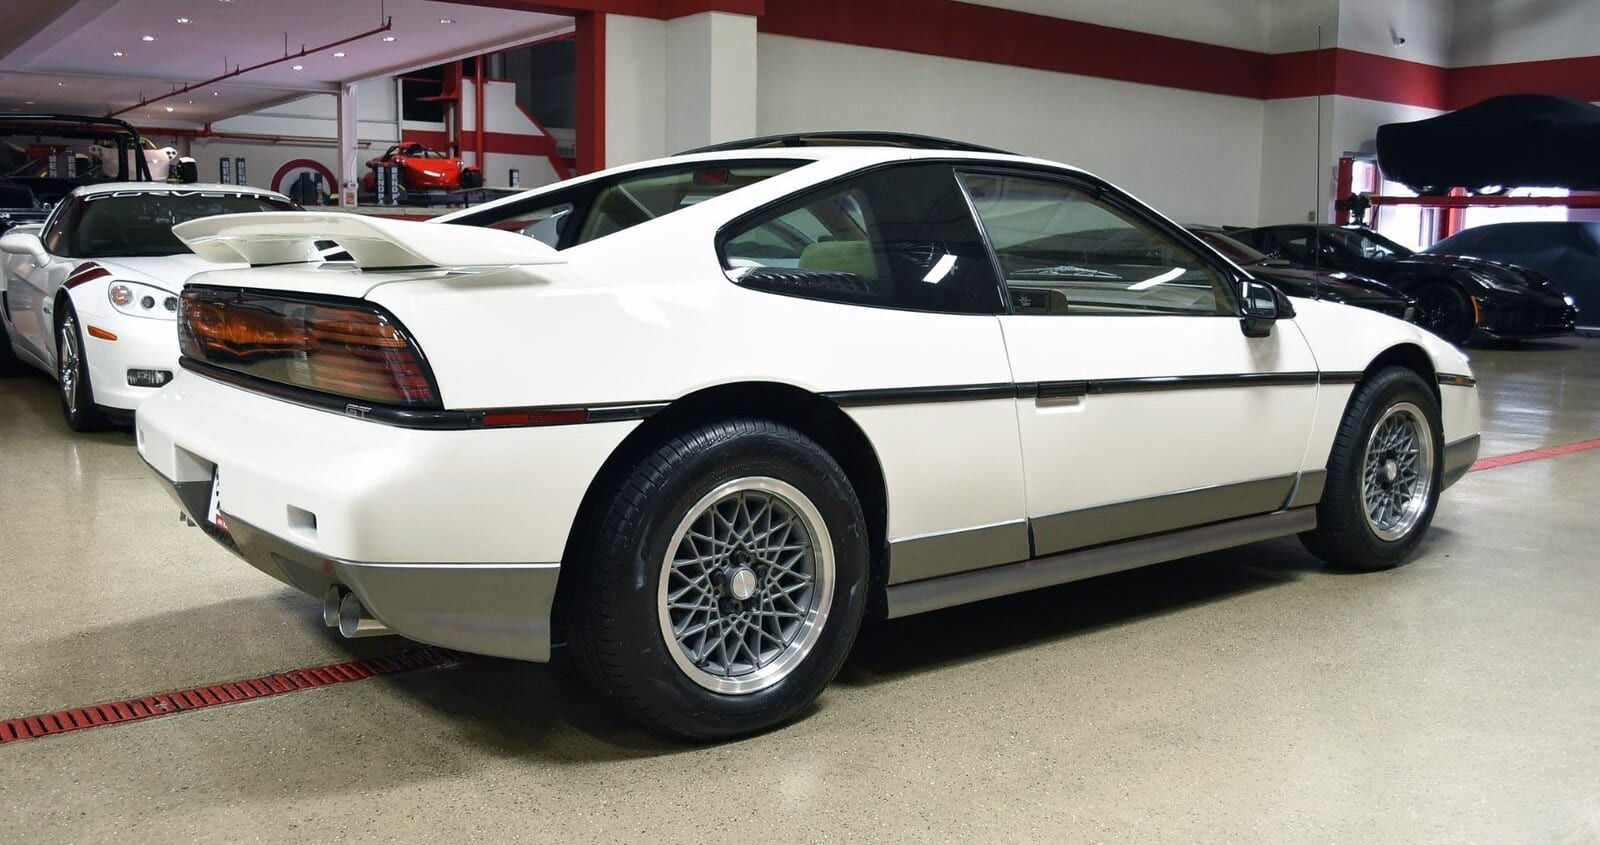 Looking at Cheap Fast Cars? Consider the 1987 Pontiac Fiero GT